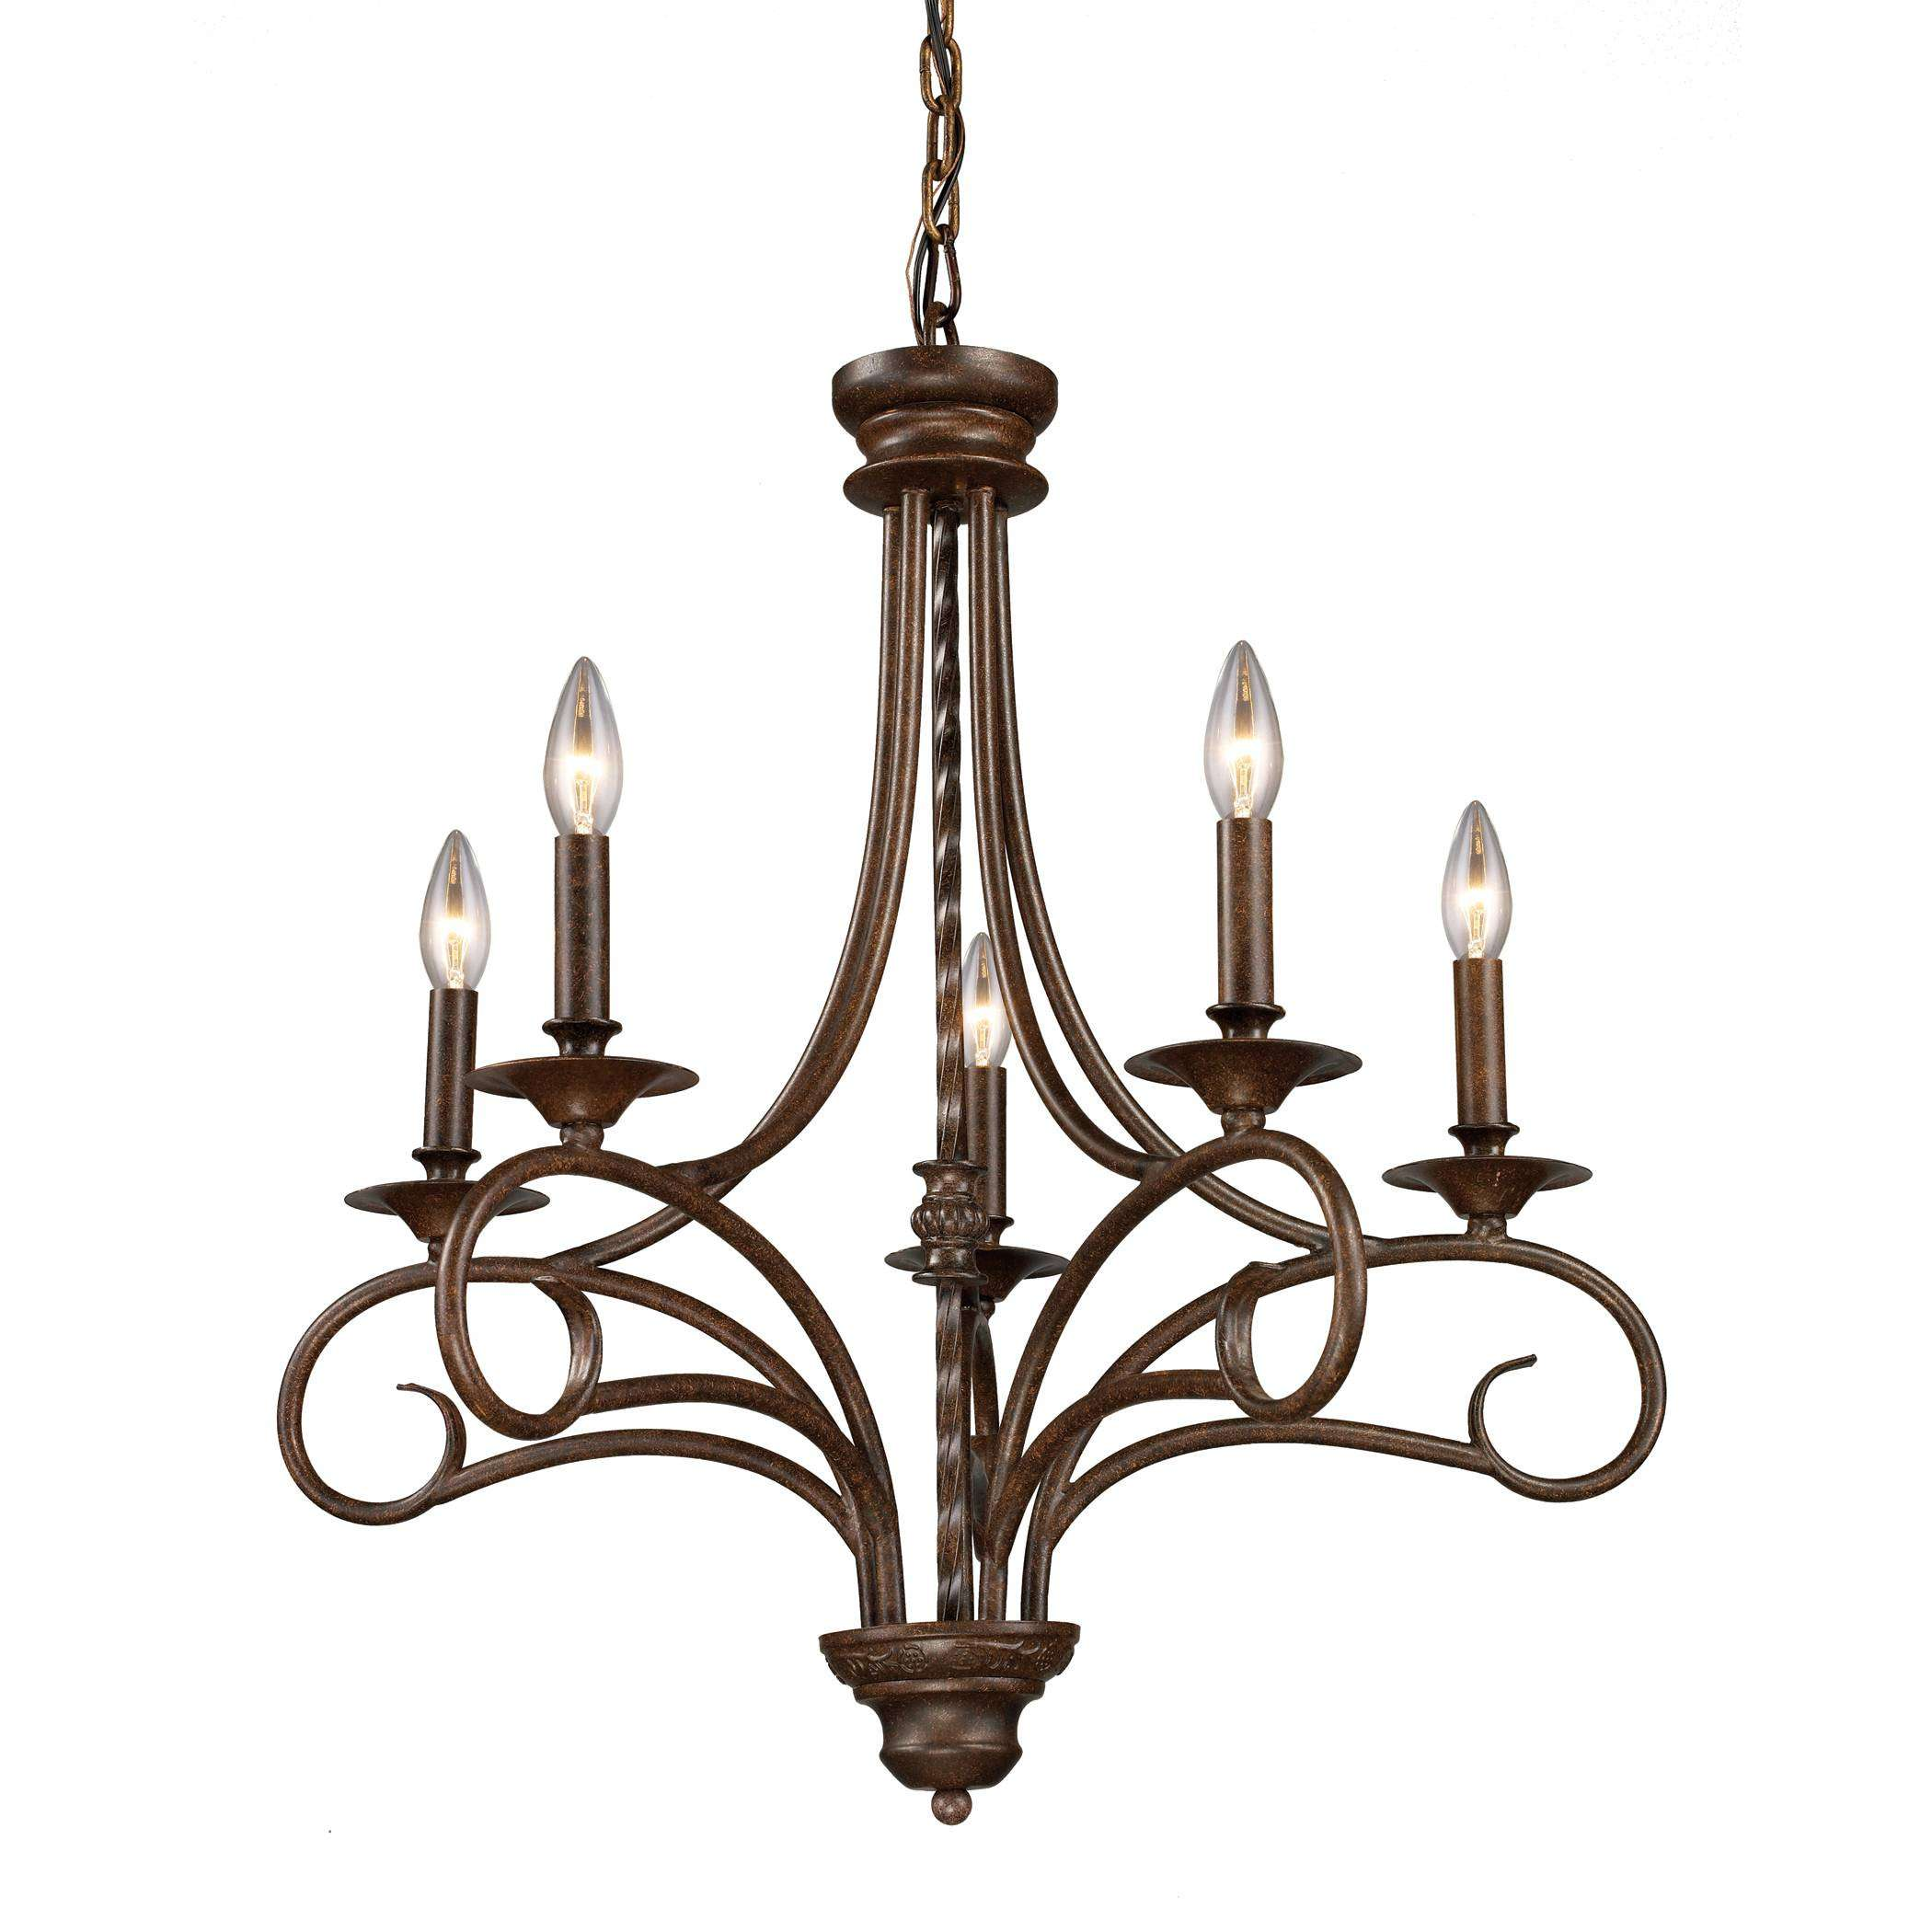 Elk Lighting 15042/5 Gloucester 5-Light Chandelier In Antique Bronze